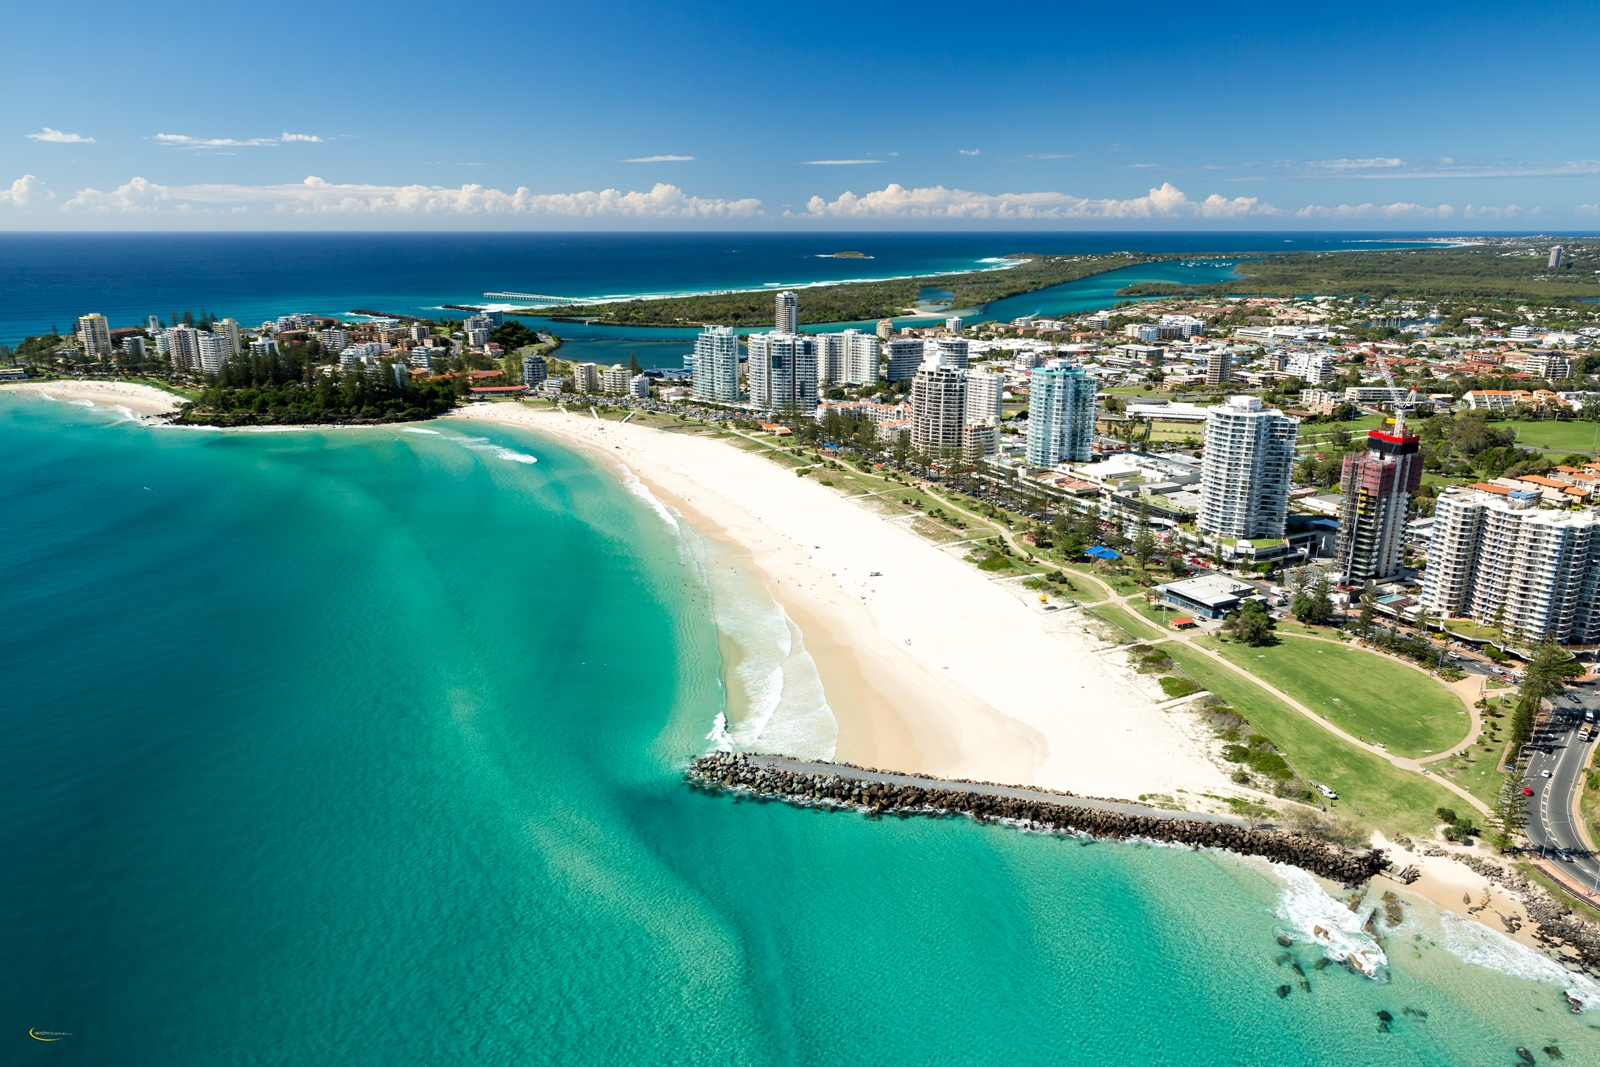 6 PERKS OF APARTMENT LIVING ON THE SOUTHERN GOLD COAST